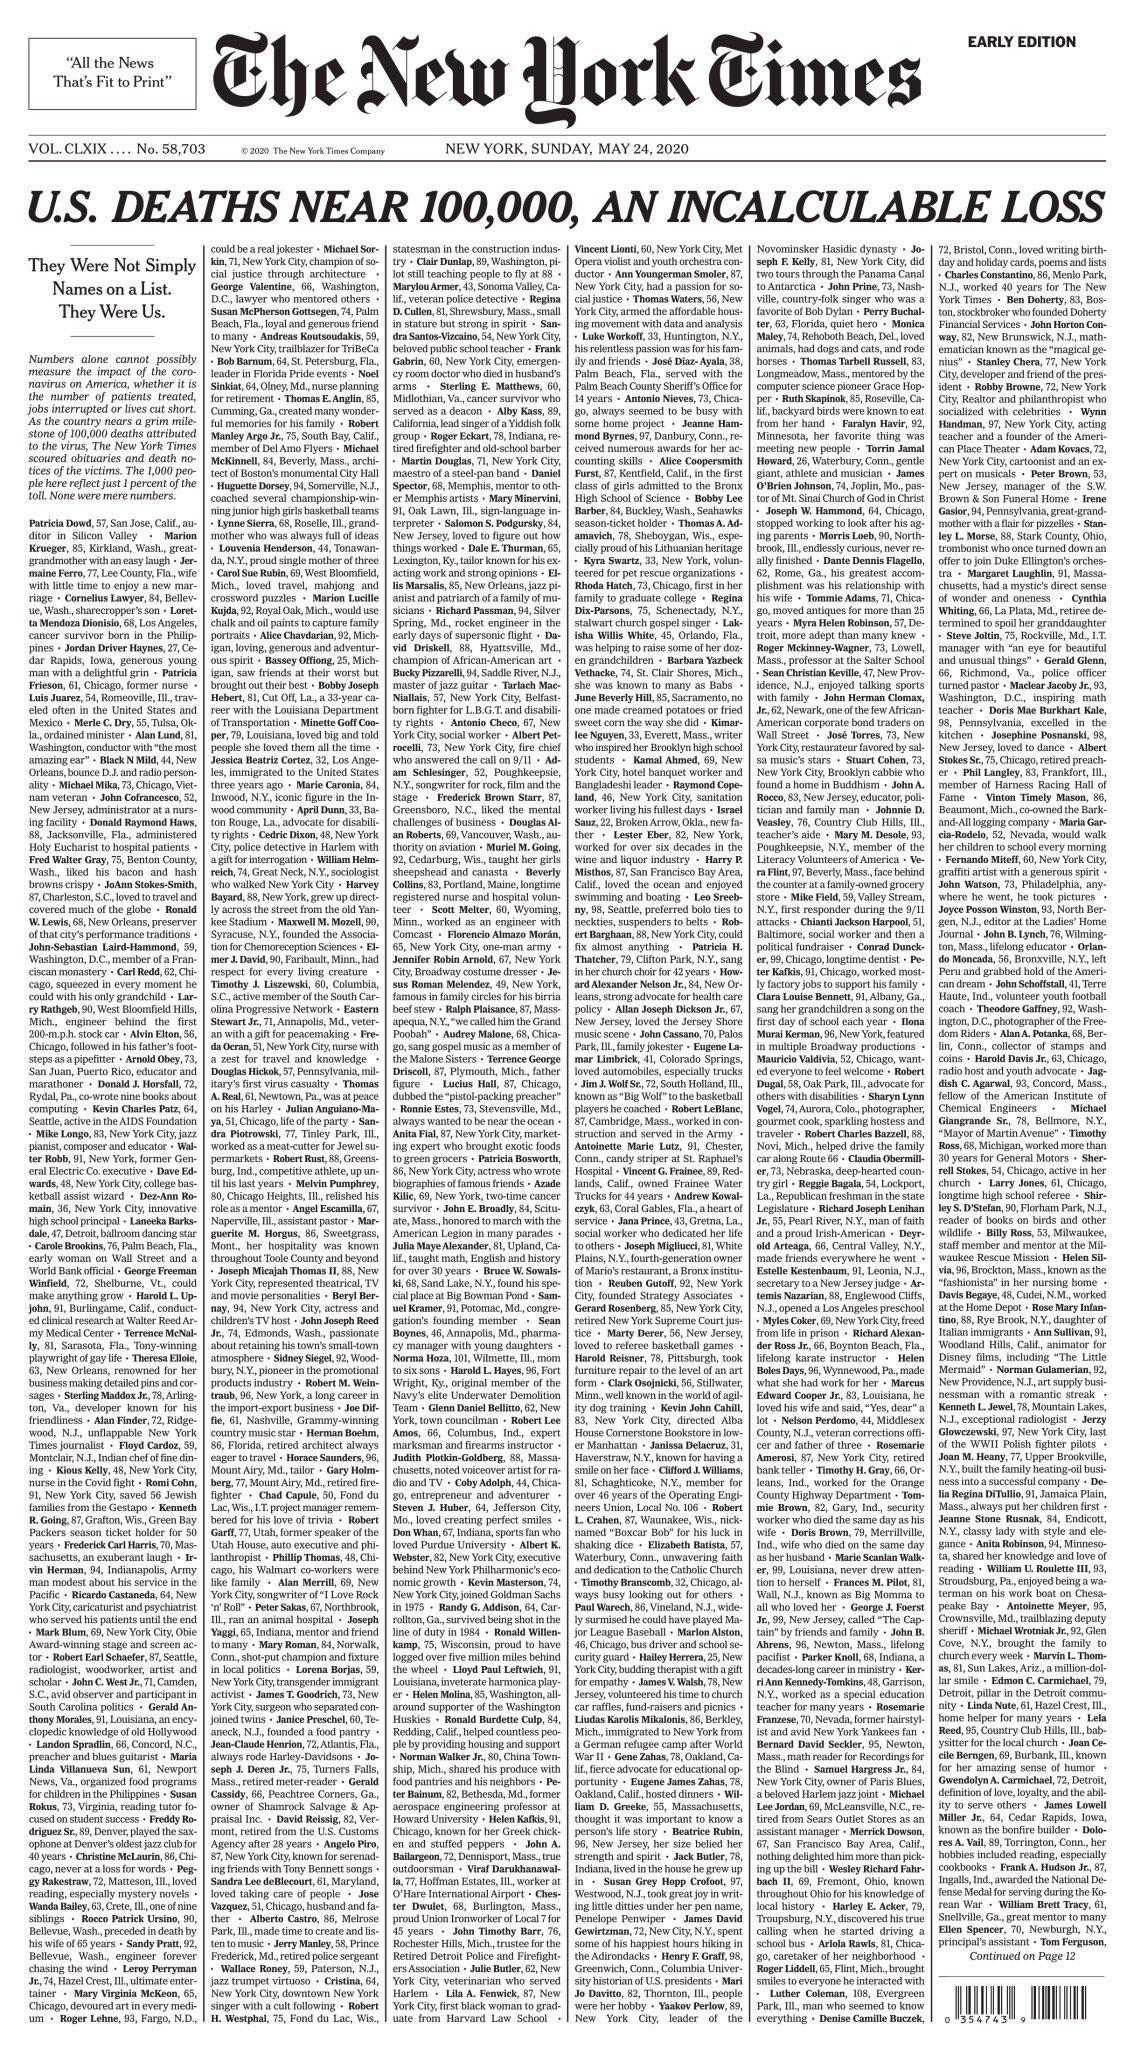 NEW YORK TIMES 2020-05-24 front page is just names of dead people